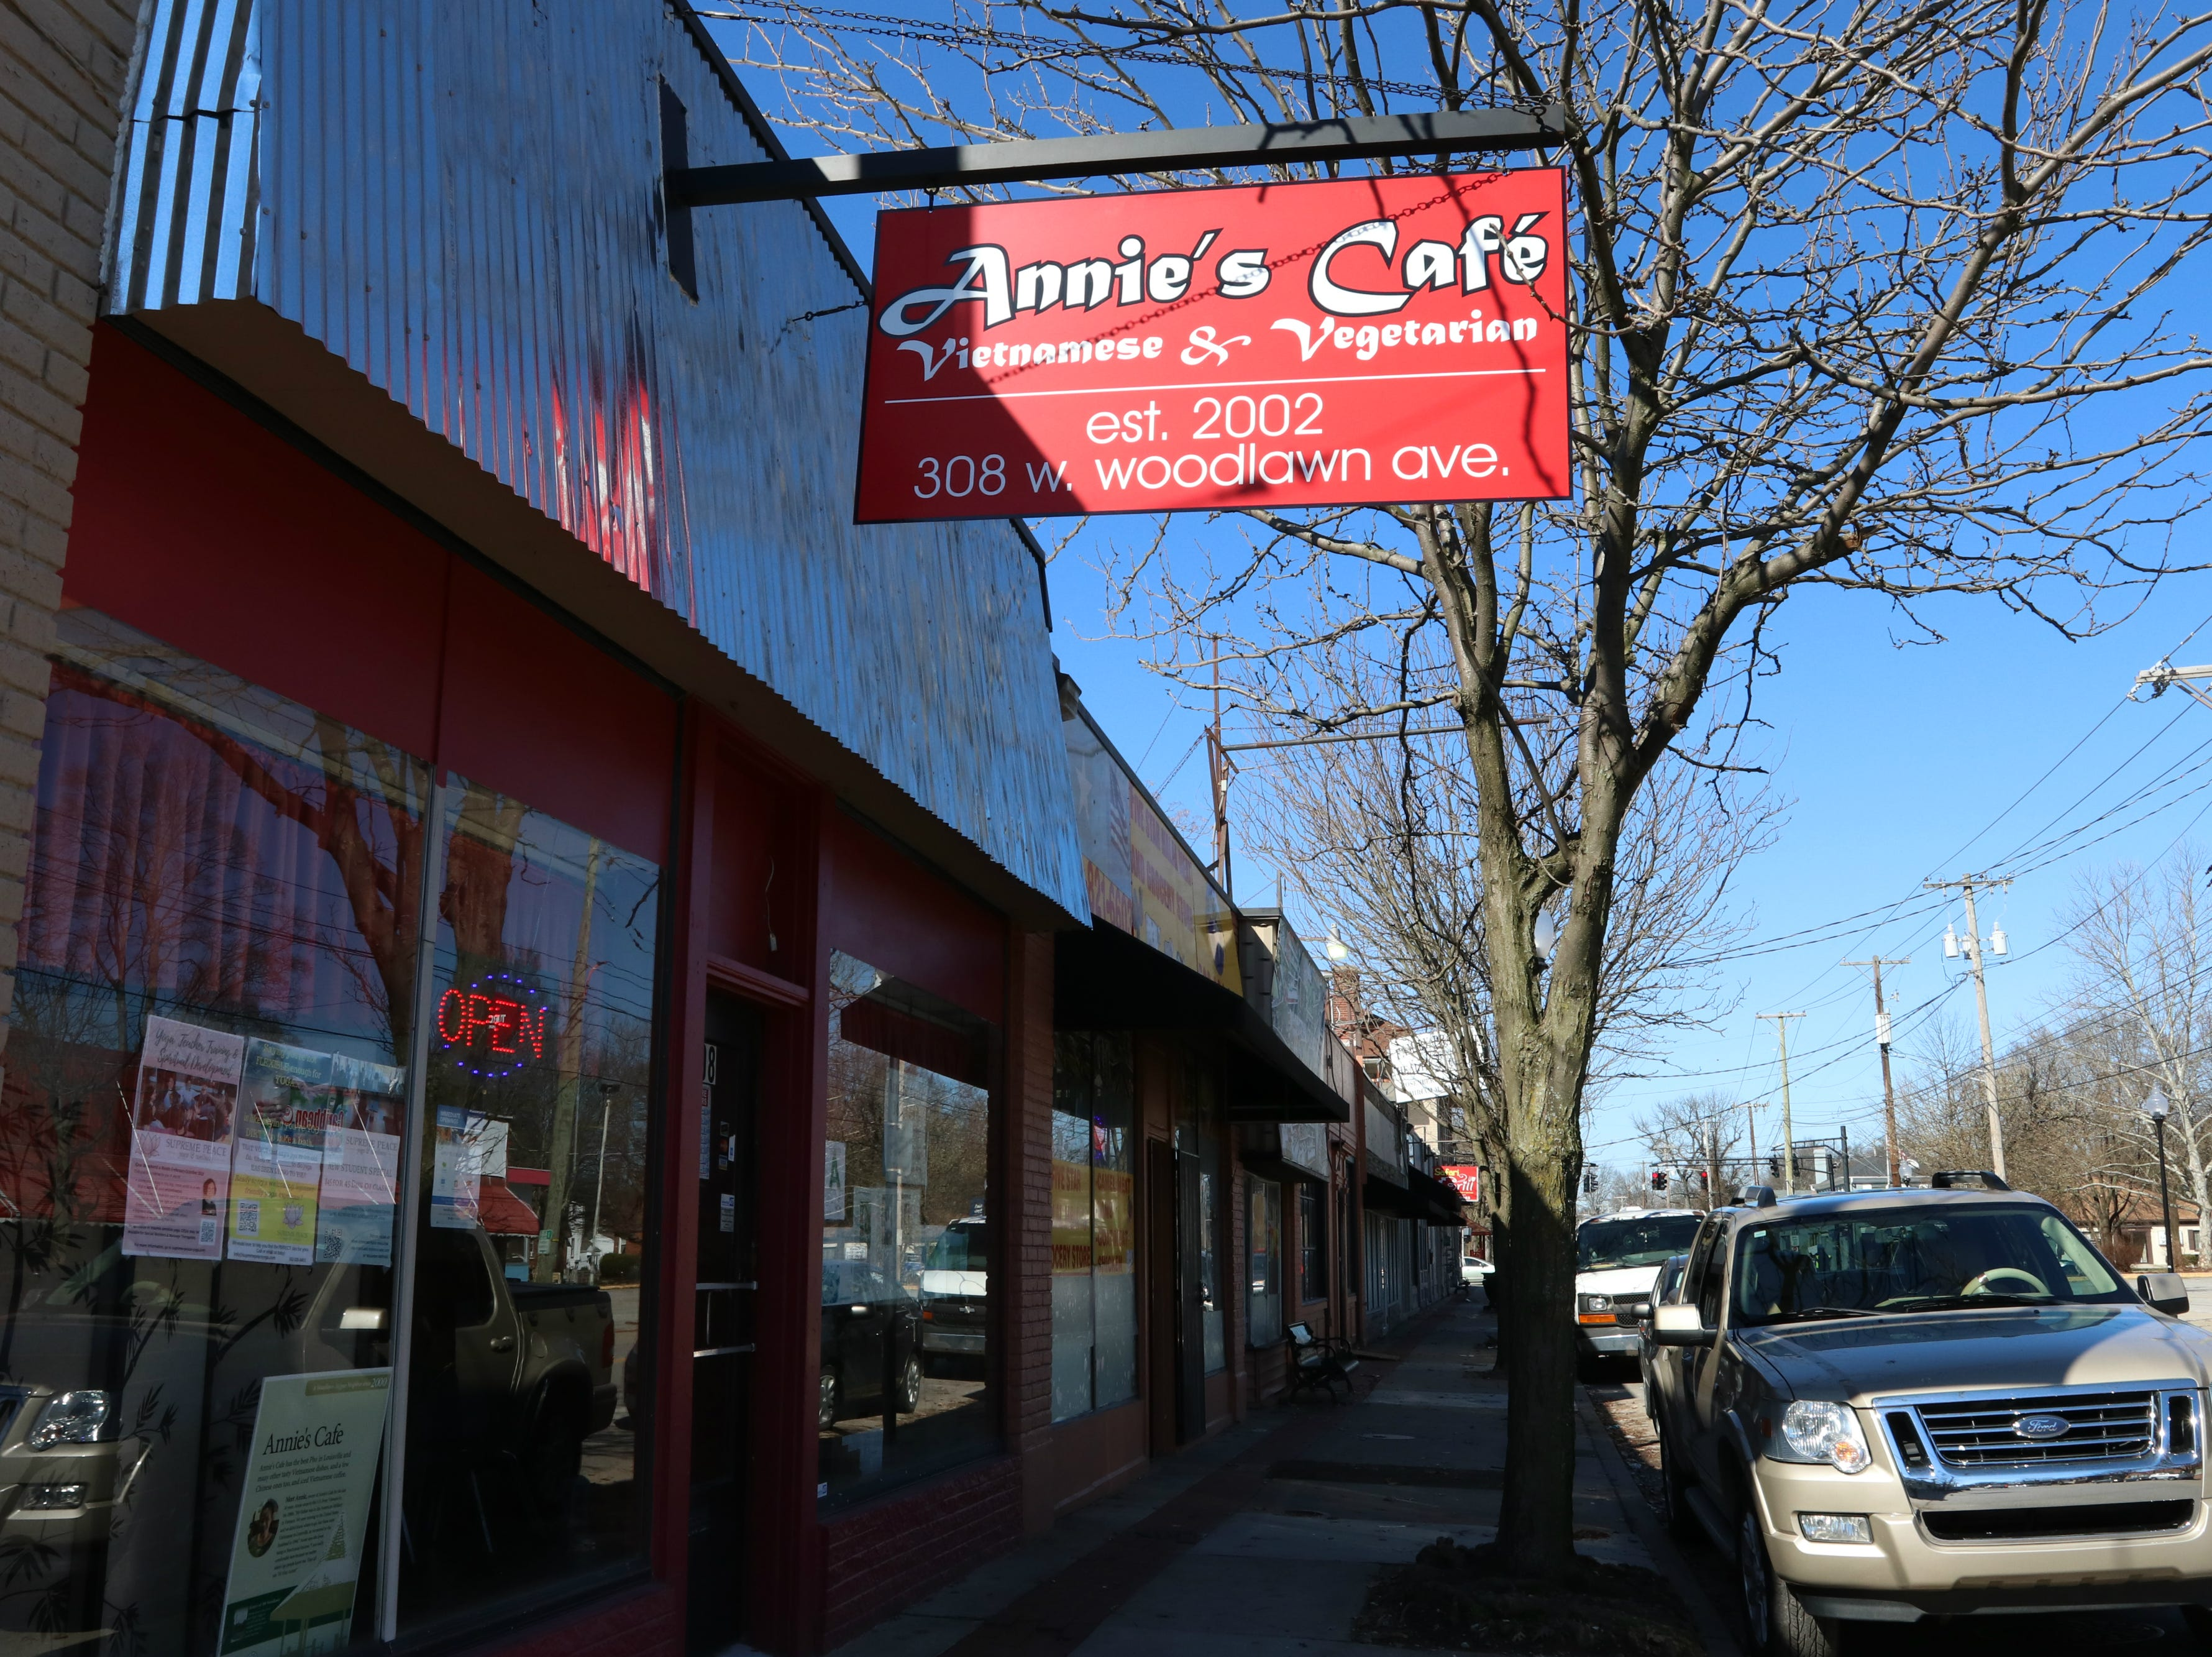 Annie's Cafe is a Vietnamese restaurant located on Woodlawn Avenue in Louisville's Beechmont neighborhood. 3/16/19